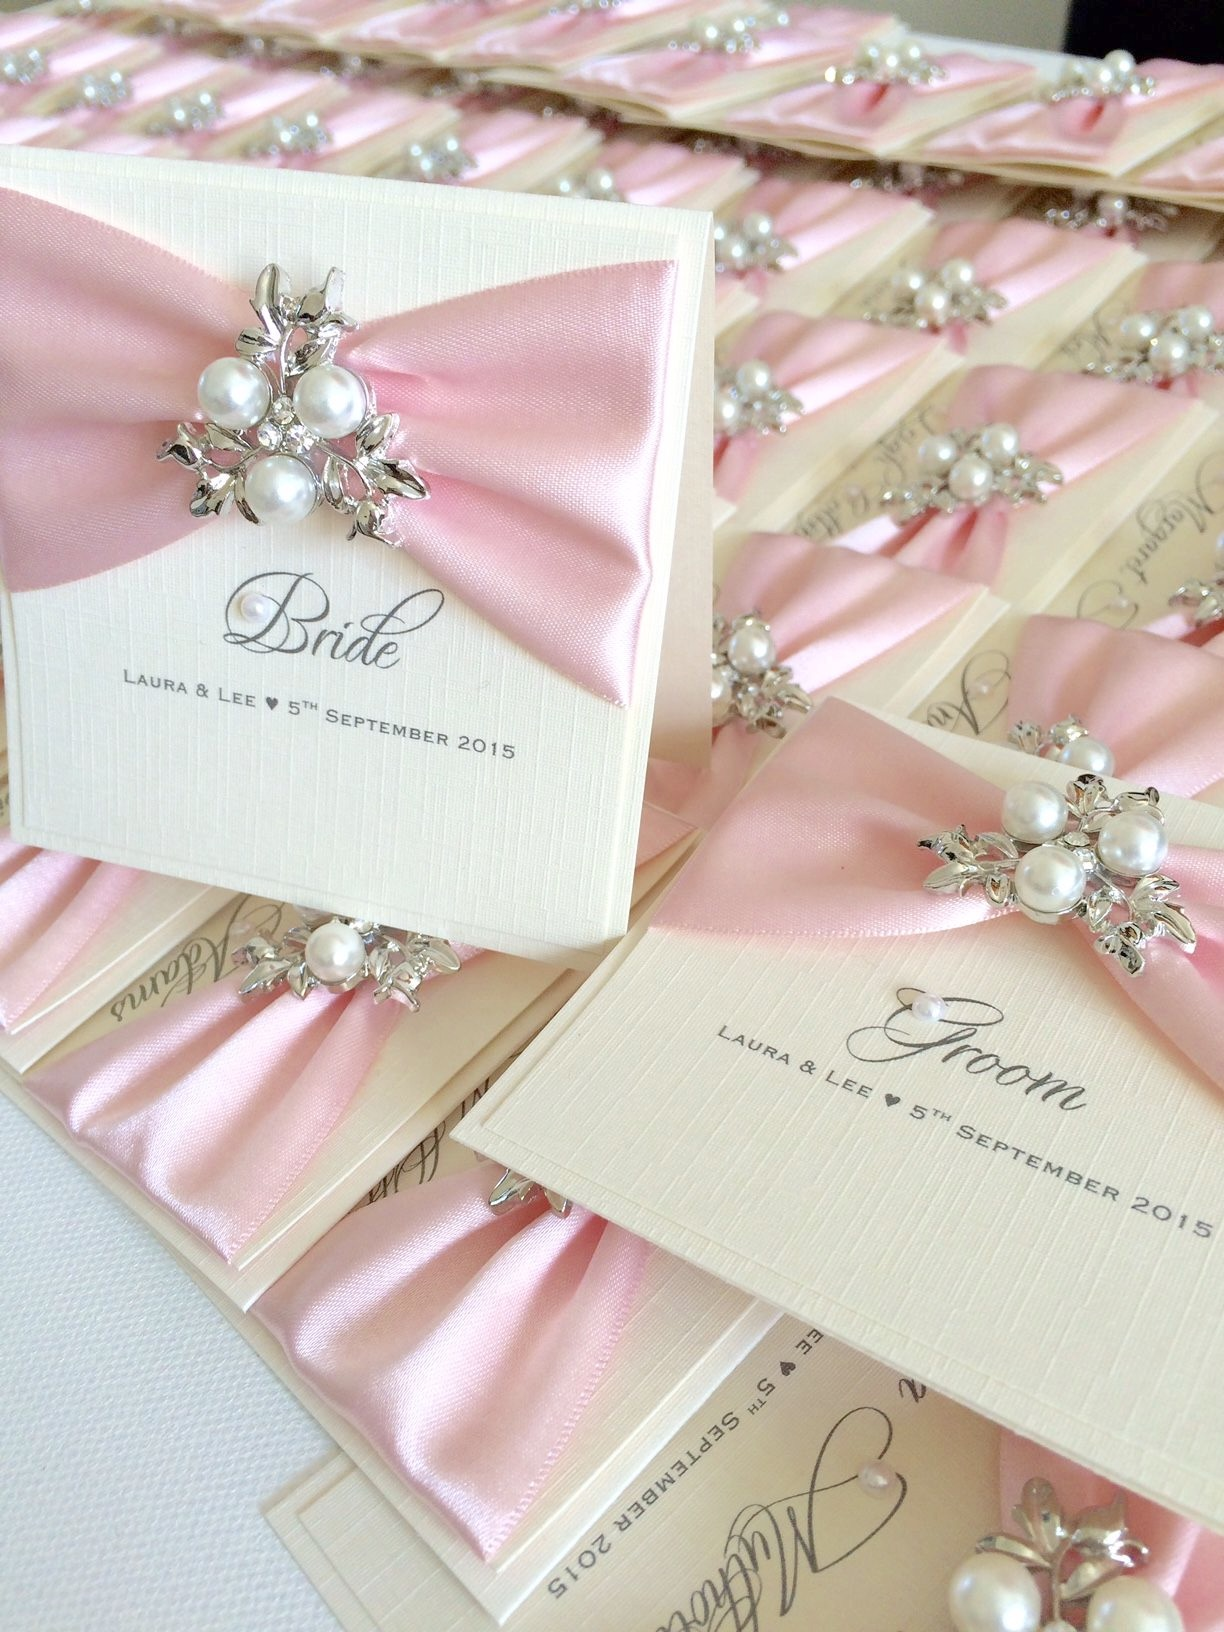 Beautiful place name cards with light pink ribbon and pearl brooch